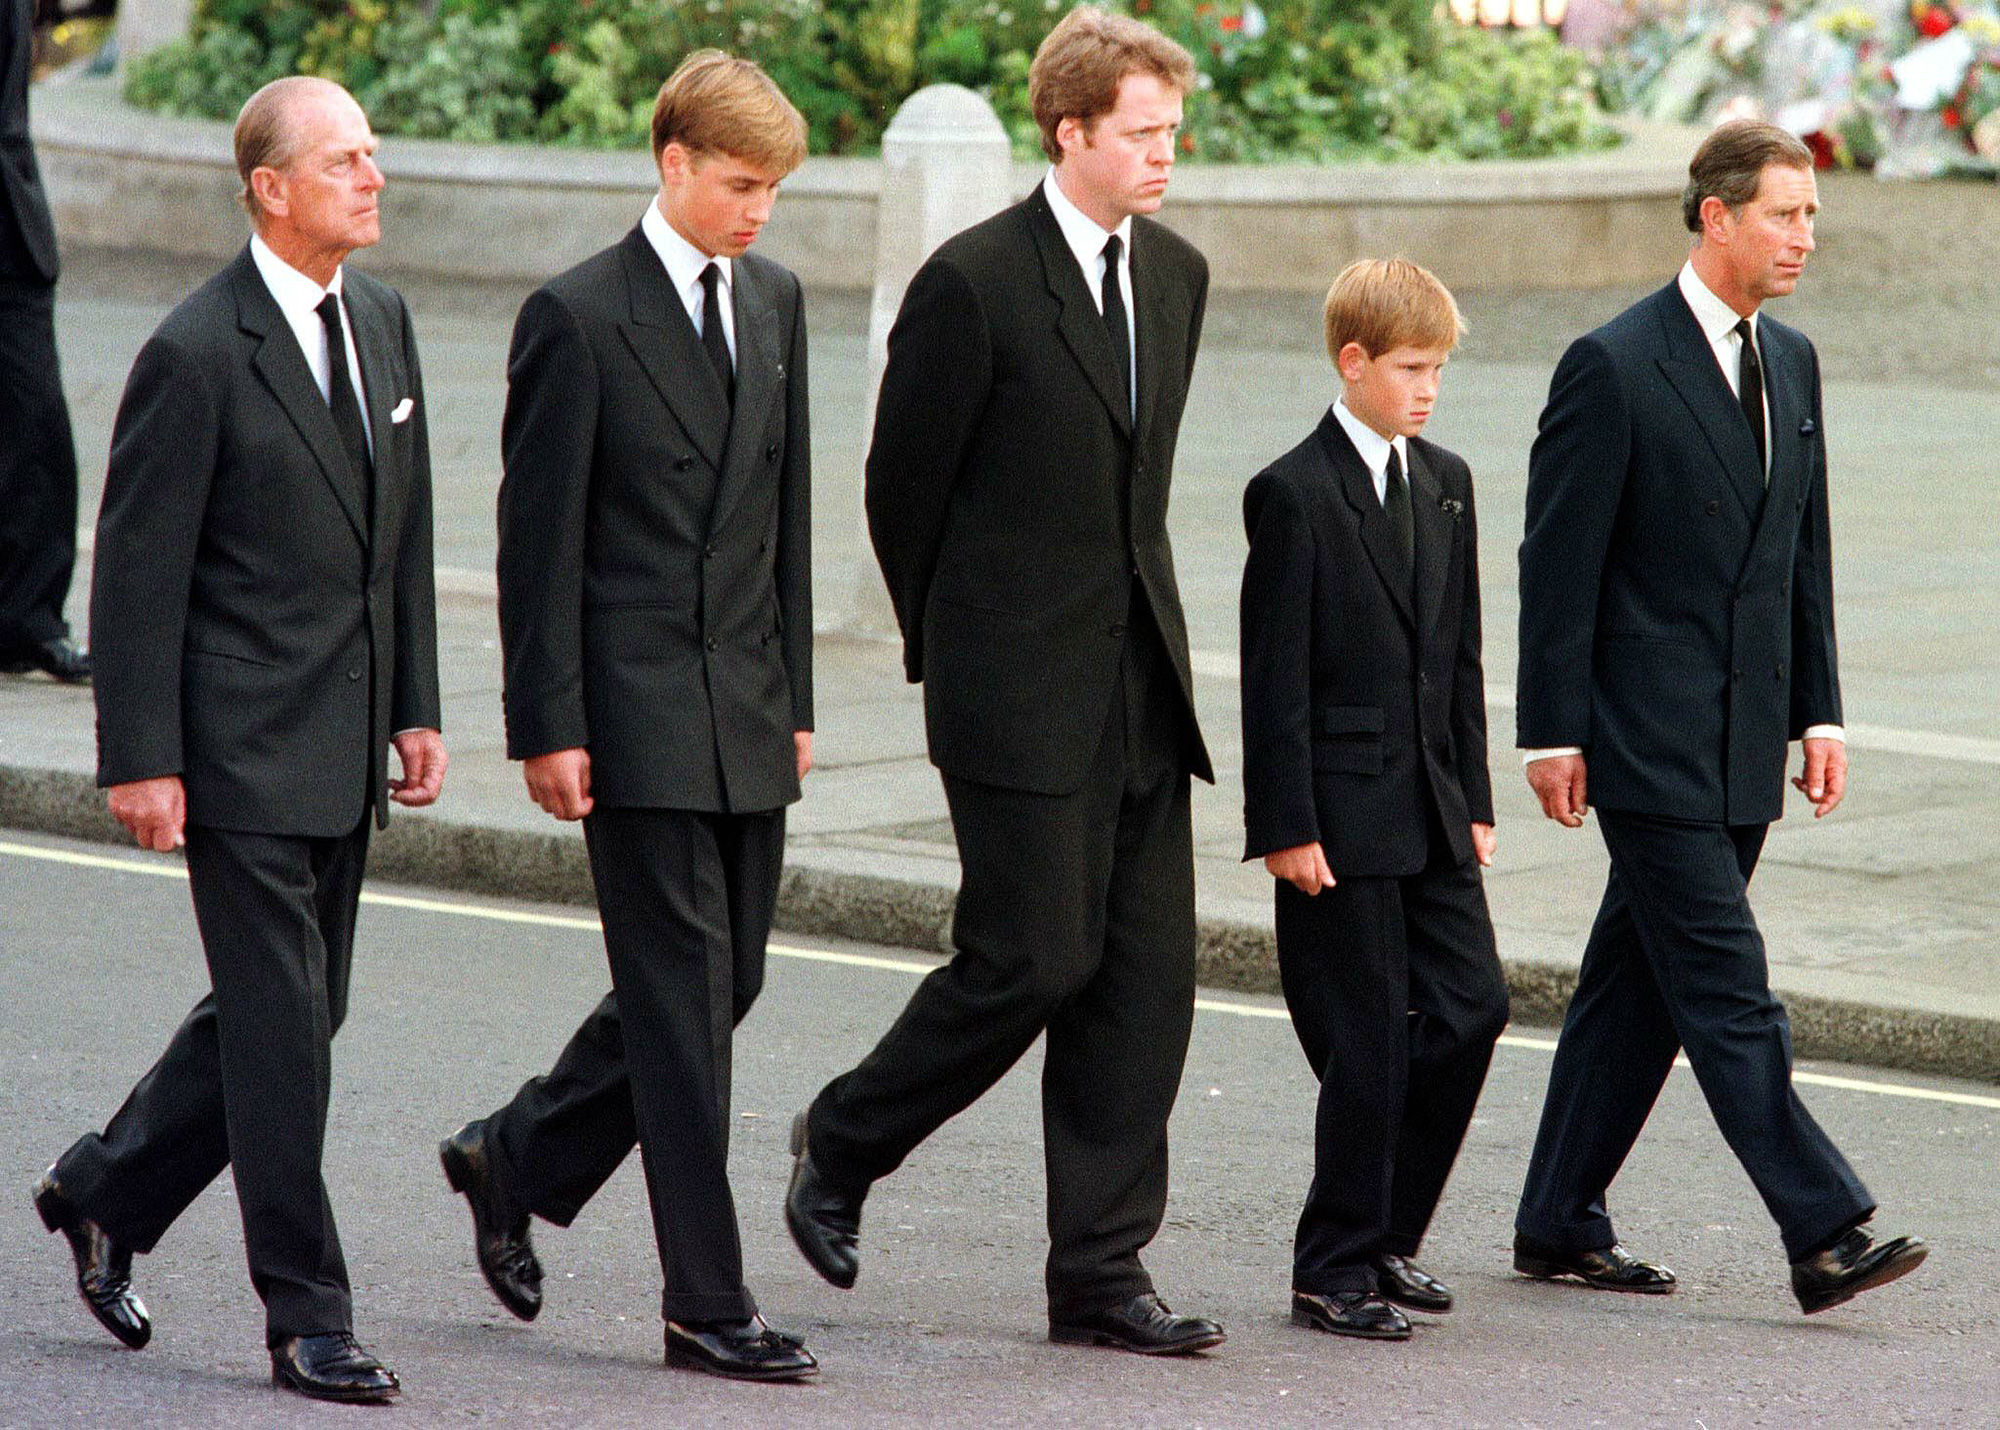 Prince Philip, Prince William, Earl Spencer, Prince Harry and Prince Charles transport outward Westminster Abbey during a wake use for Princess Diana